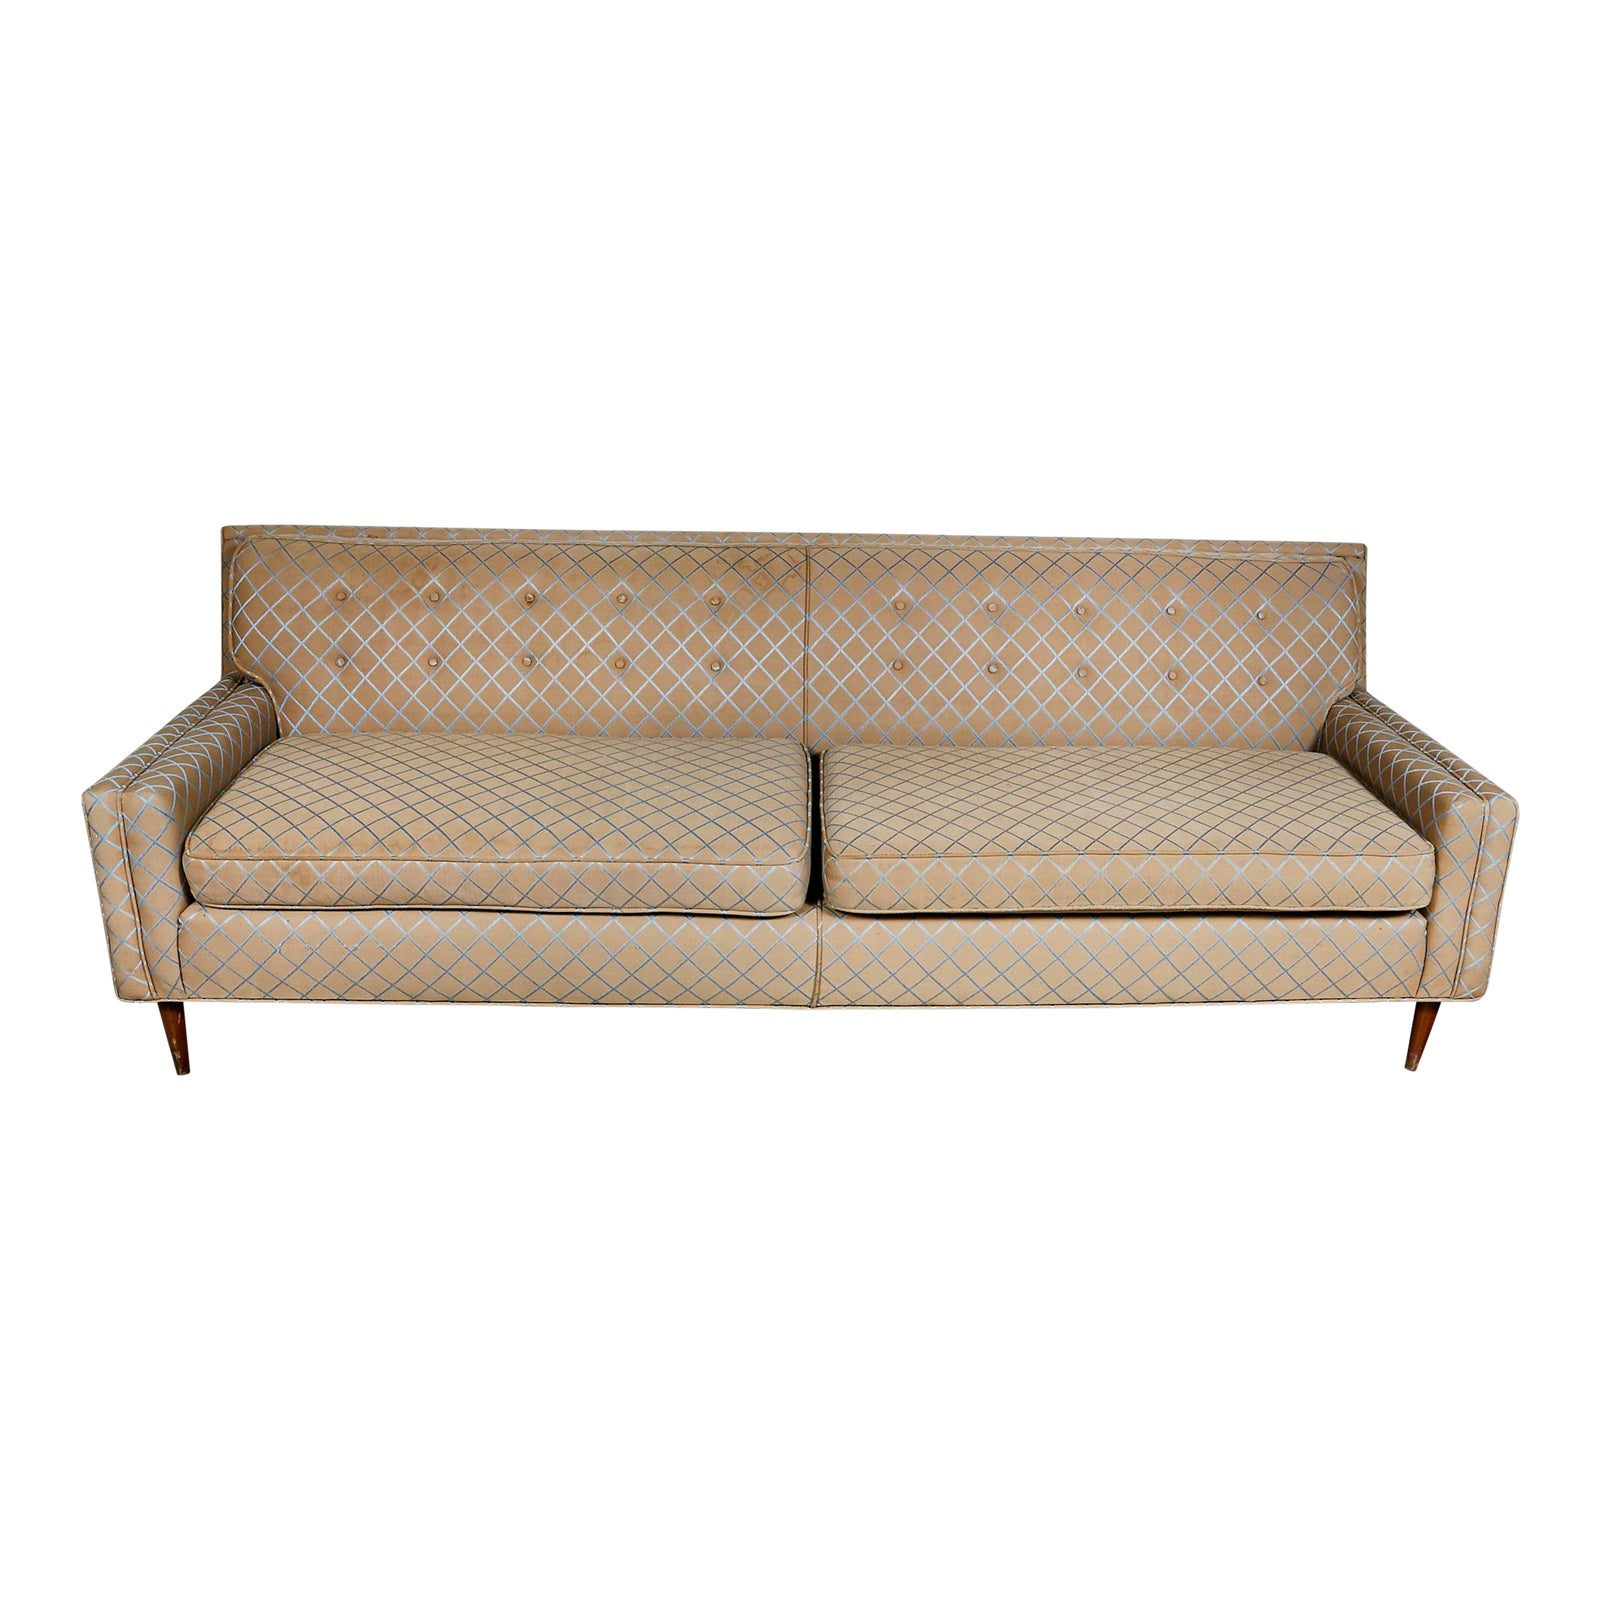 Vintage Mid Century Modern Low Back Couch Sofa | Chairish